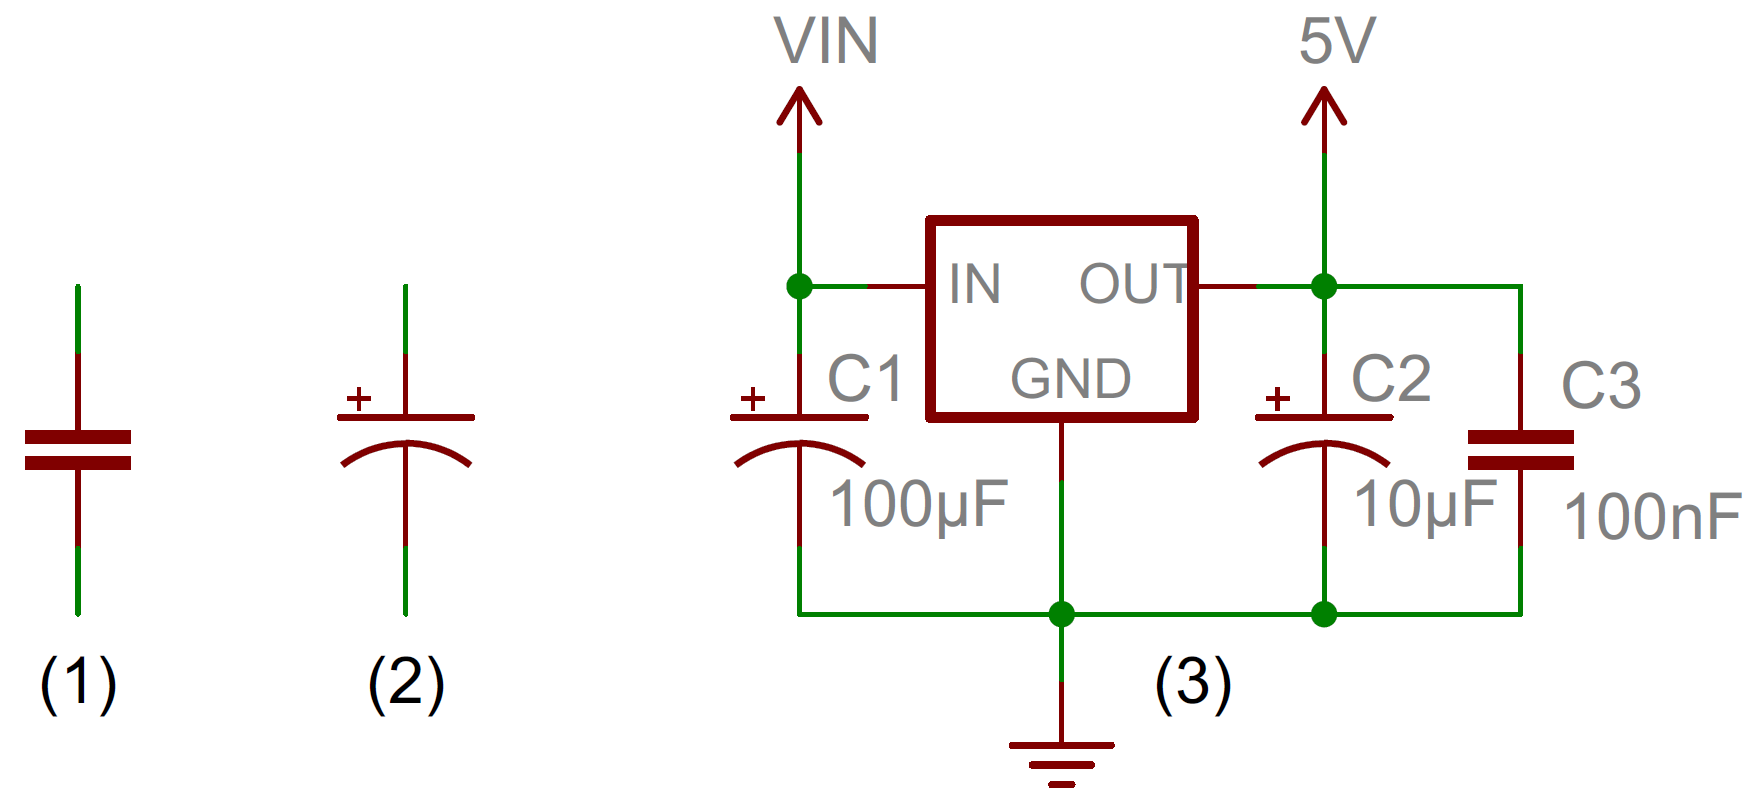 Capacitors The Simple Electric Motor Powered By Two Batteries Connected In Series Capacitor Circuit Symbols